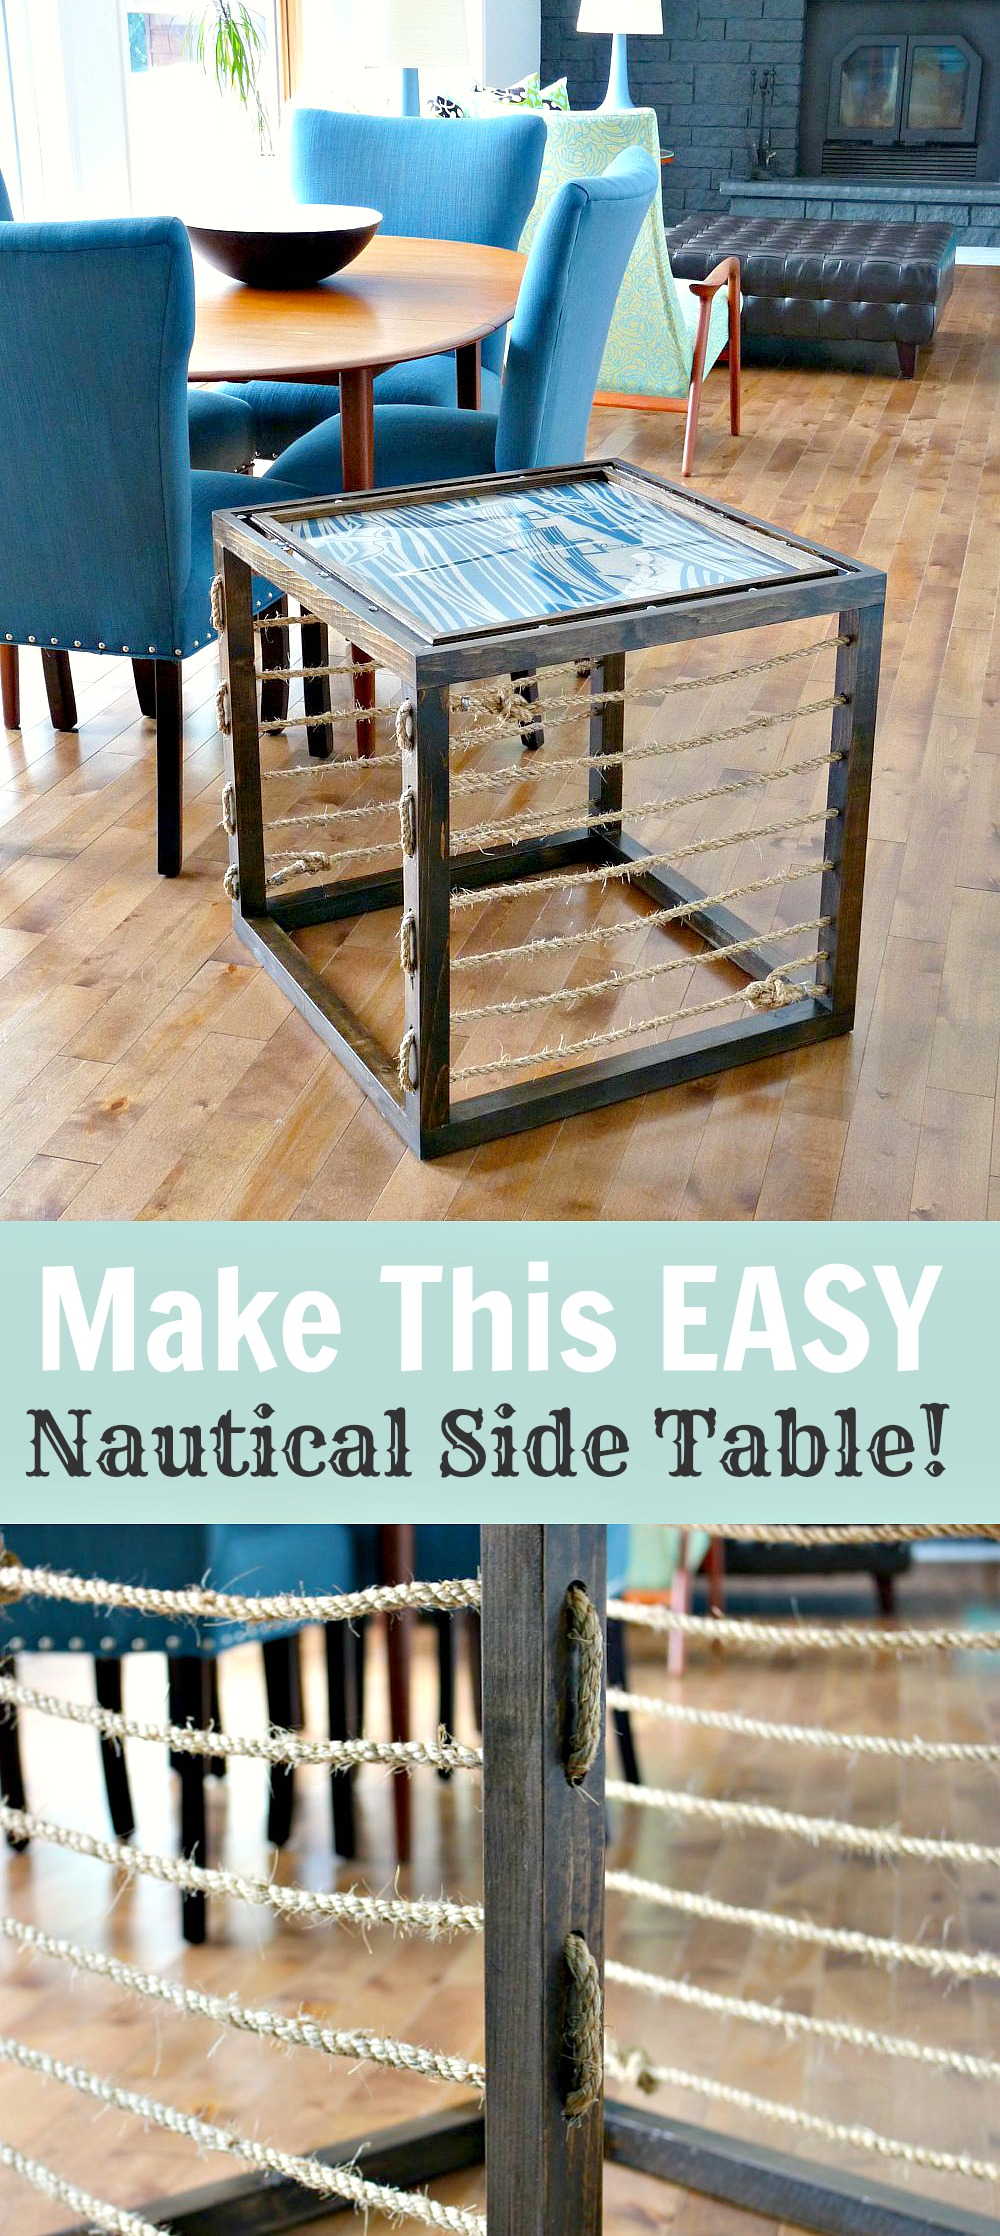 How to make an easy, solid wood cube side table with rope accents and a nautical feel // by @danslelakehouse